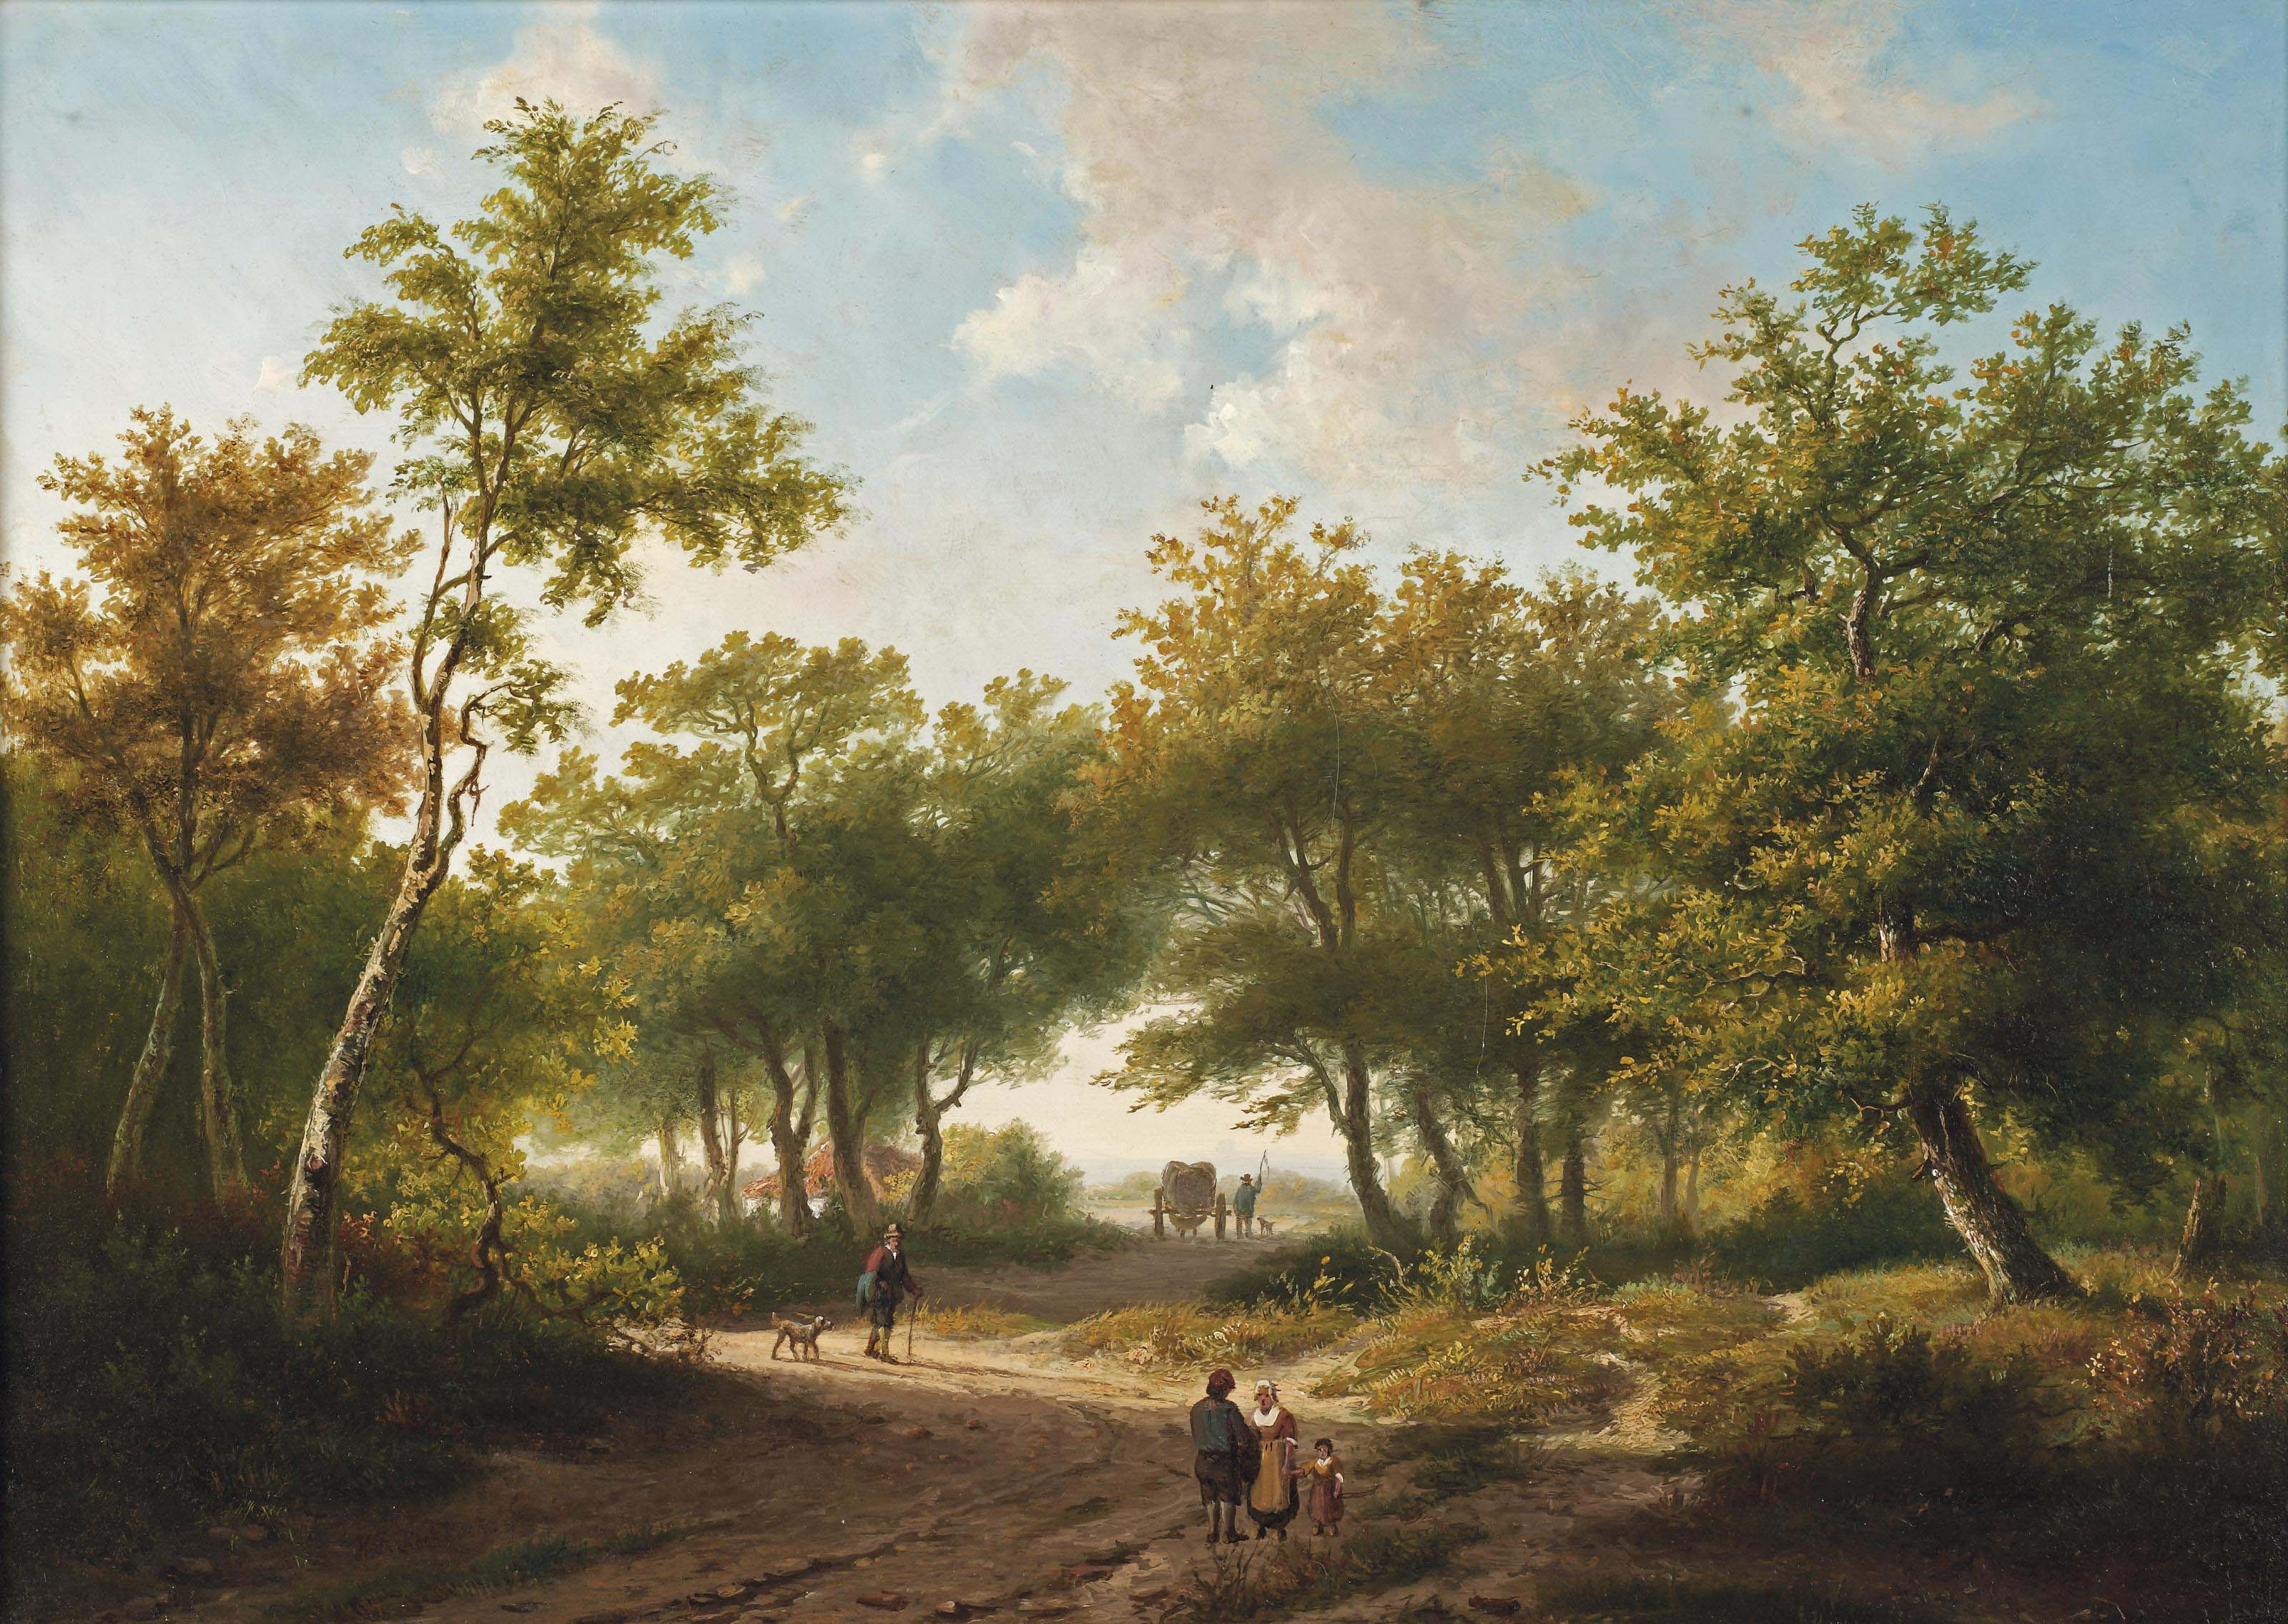 Travelers in a forest during a sunny day